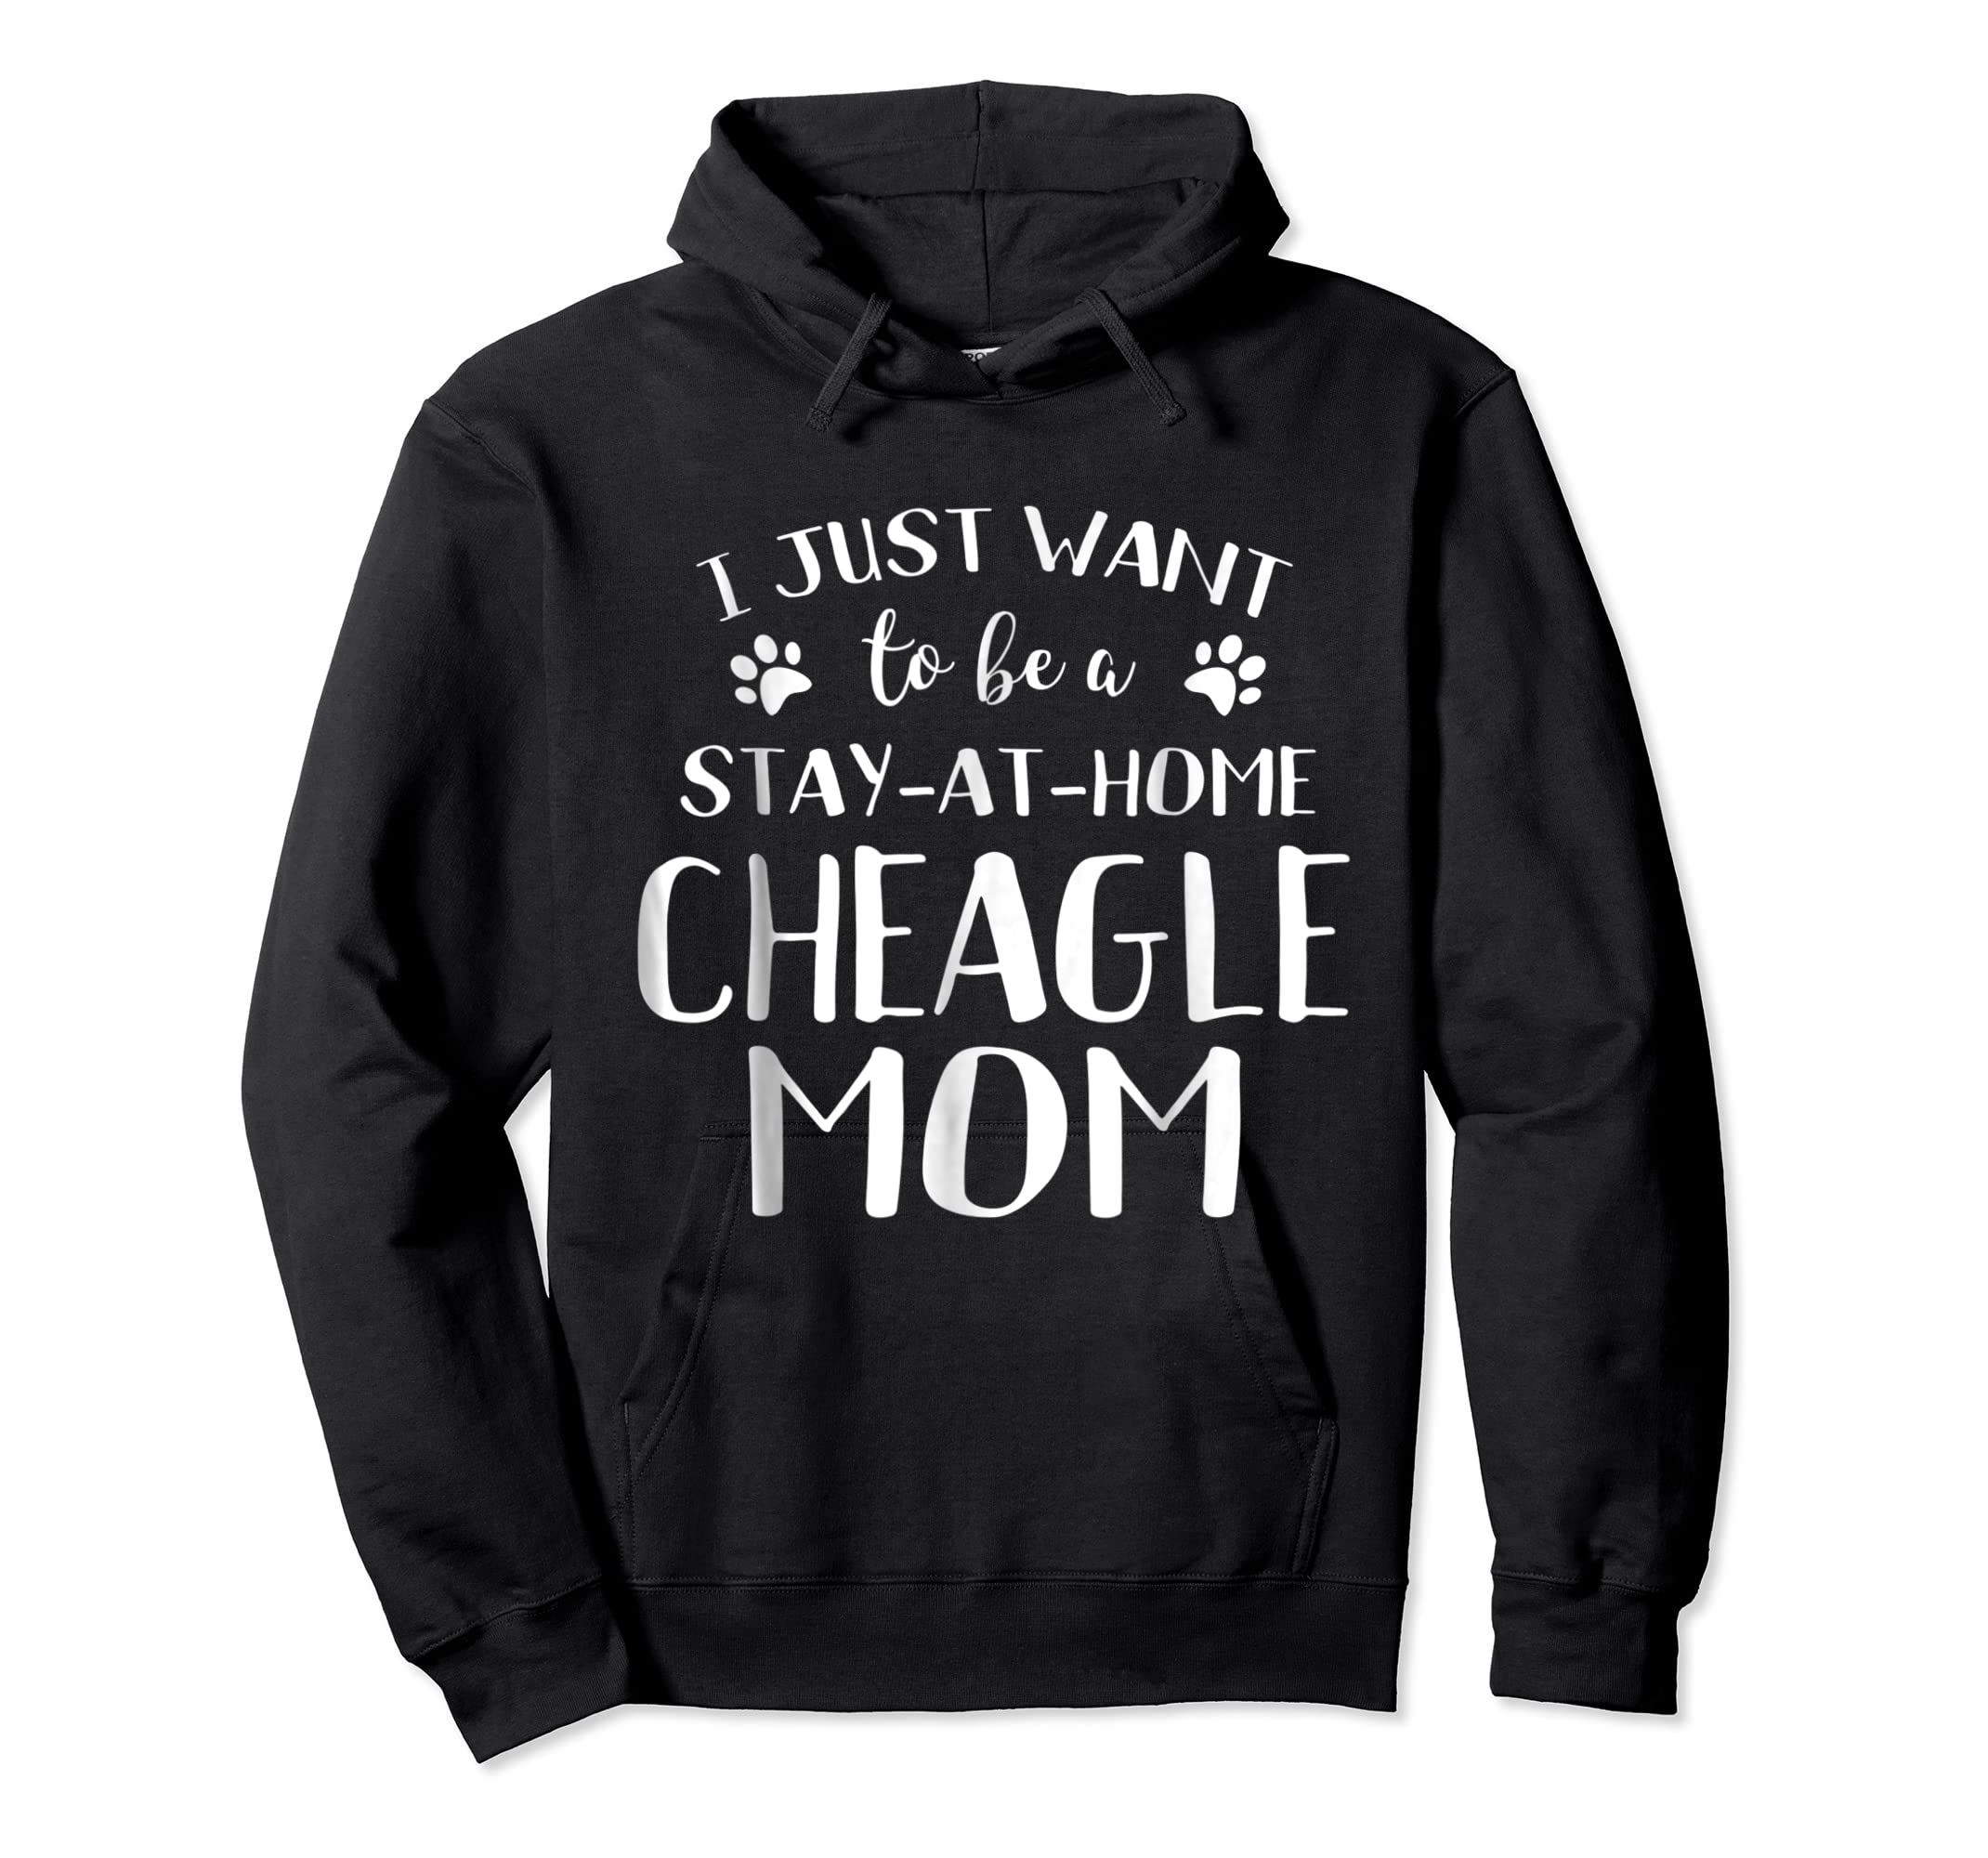 Cheagle Mom TShirt Cheagle Dog Breed Gift Pet Lover-Hoodie-Black